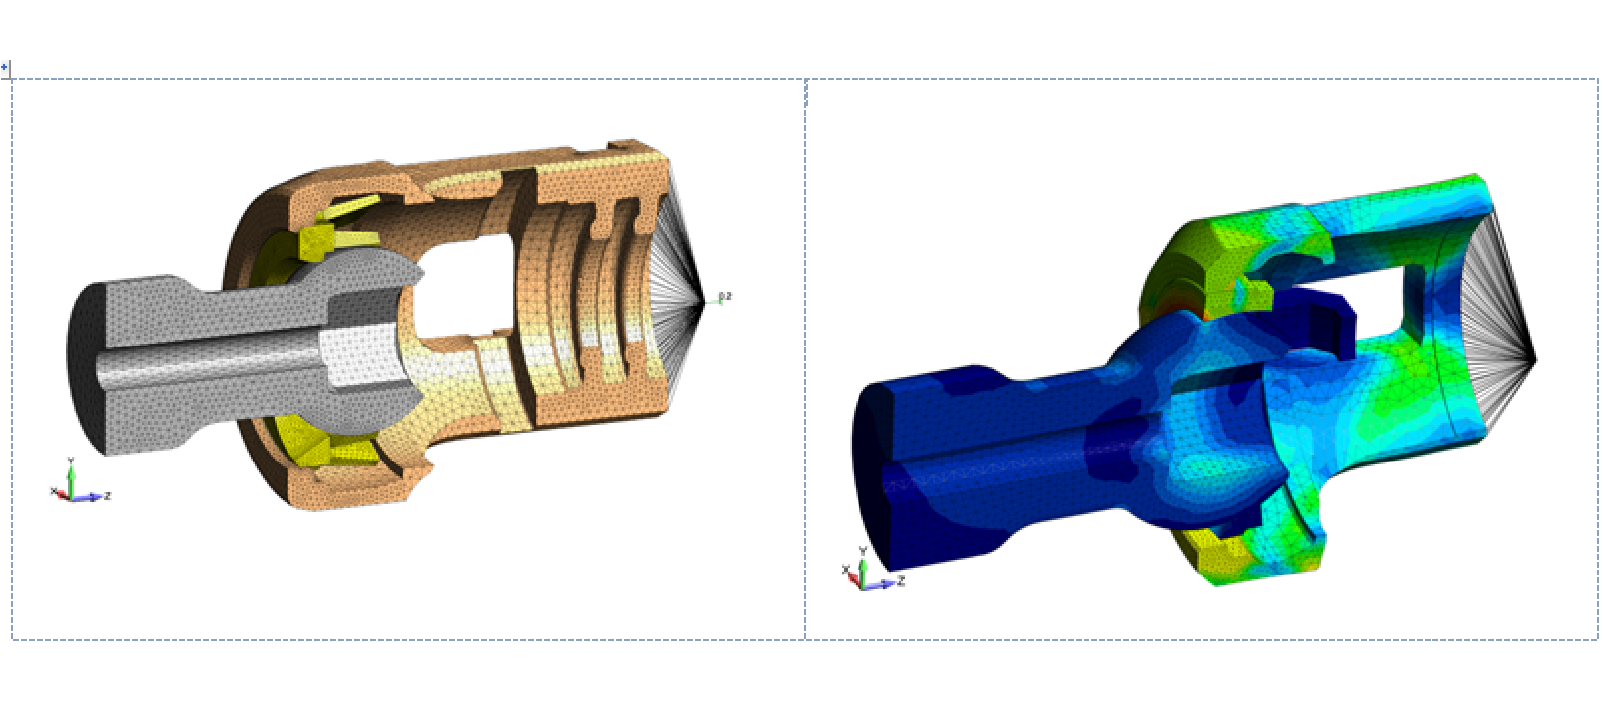 Figure 2: FEA simulation model of titanium locking pedicle screw for spinal surgery as analyzed for its locking capability as a function of interference fit and friction coefficient